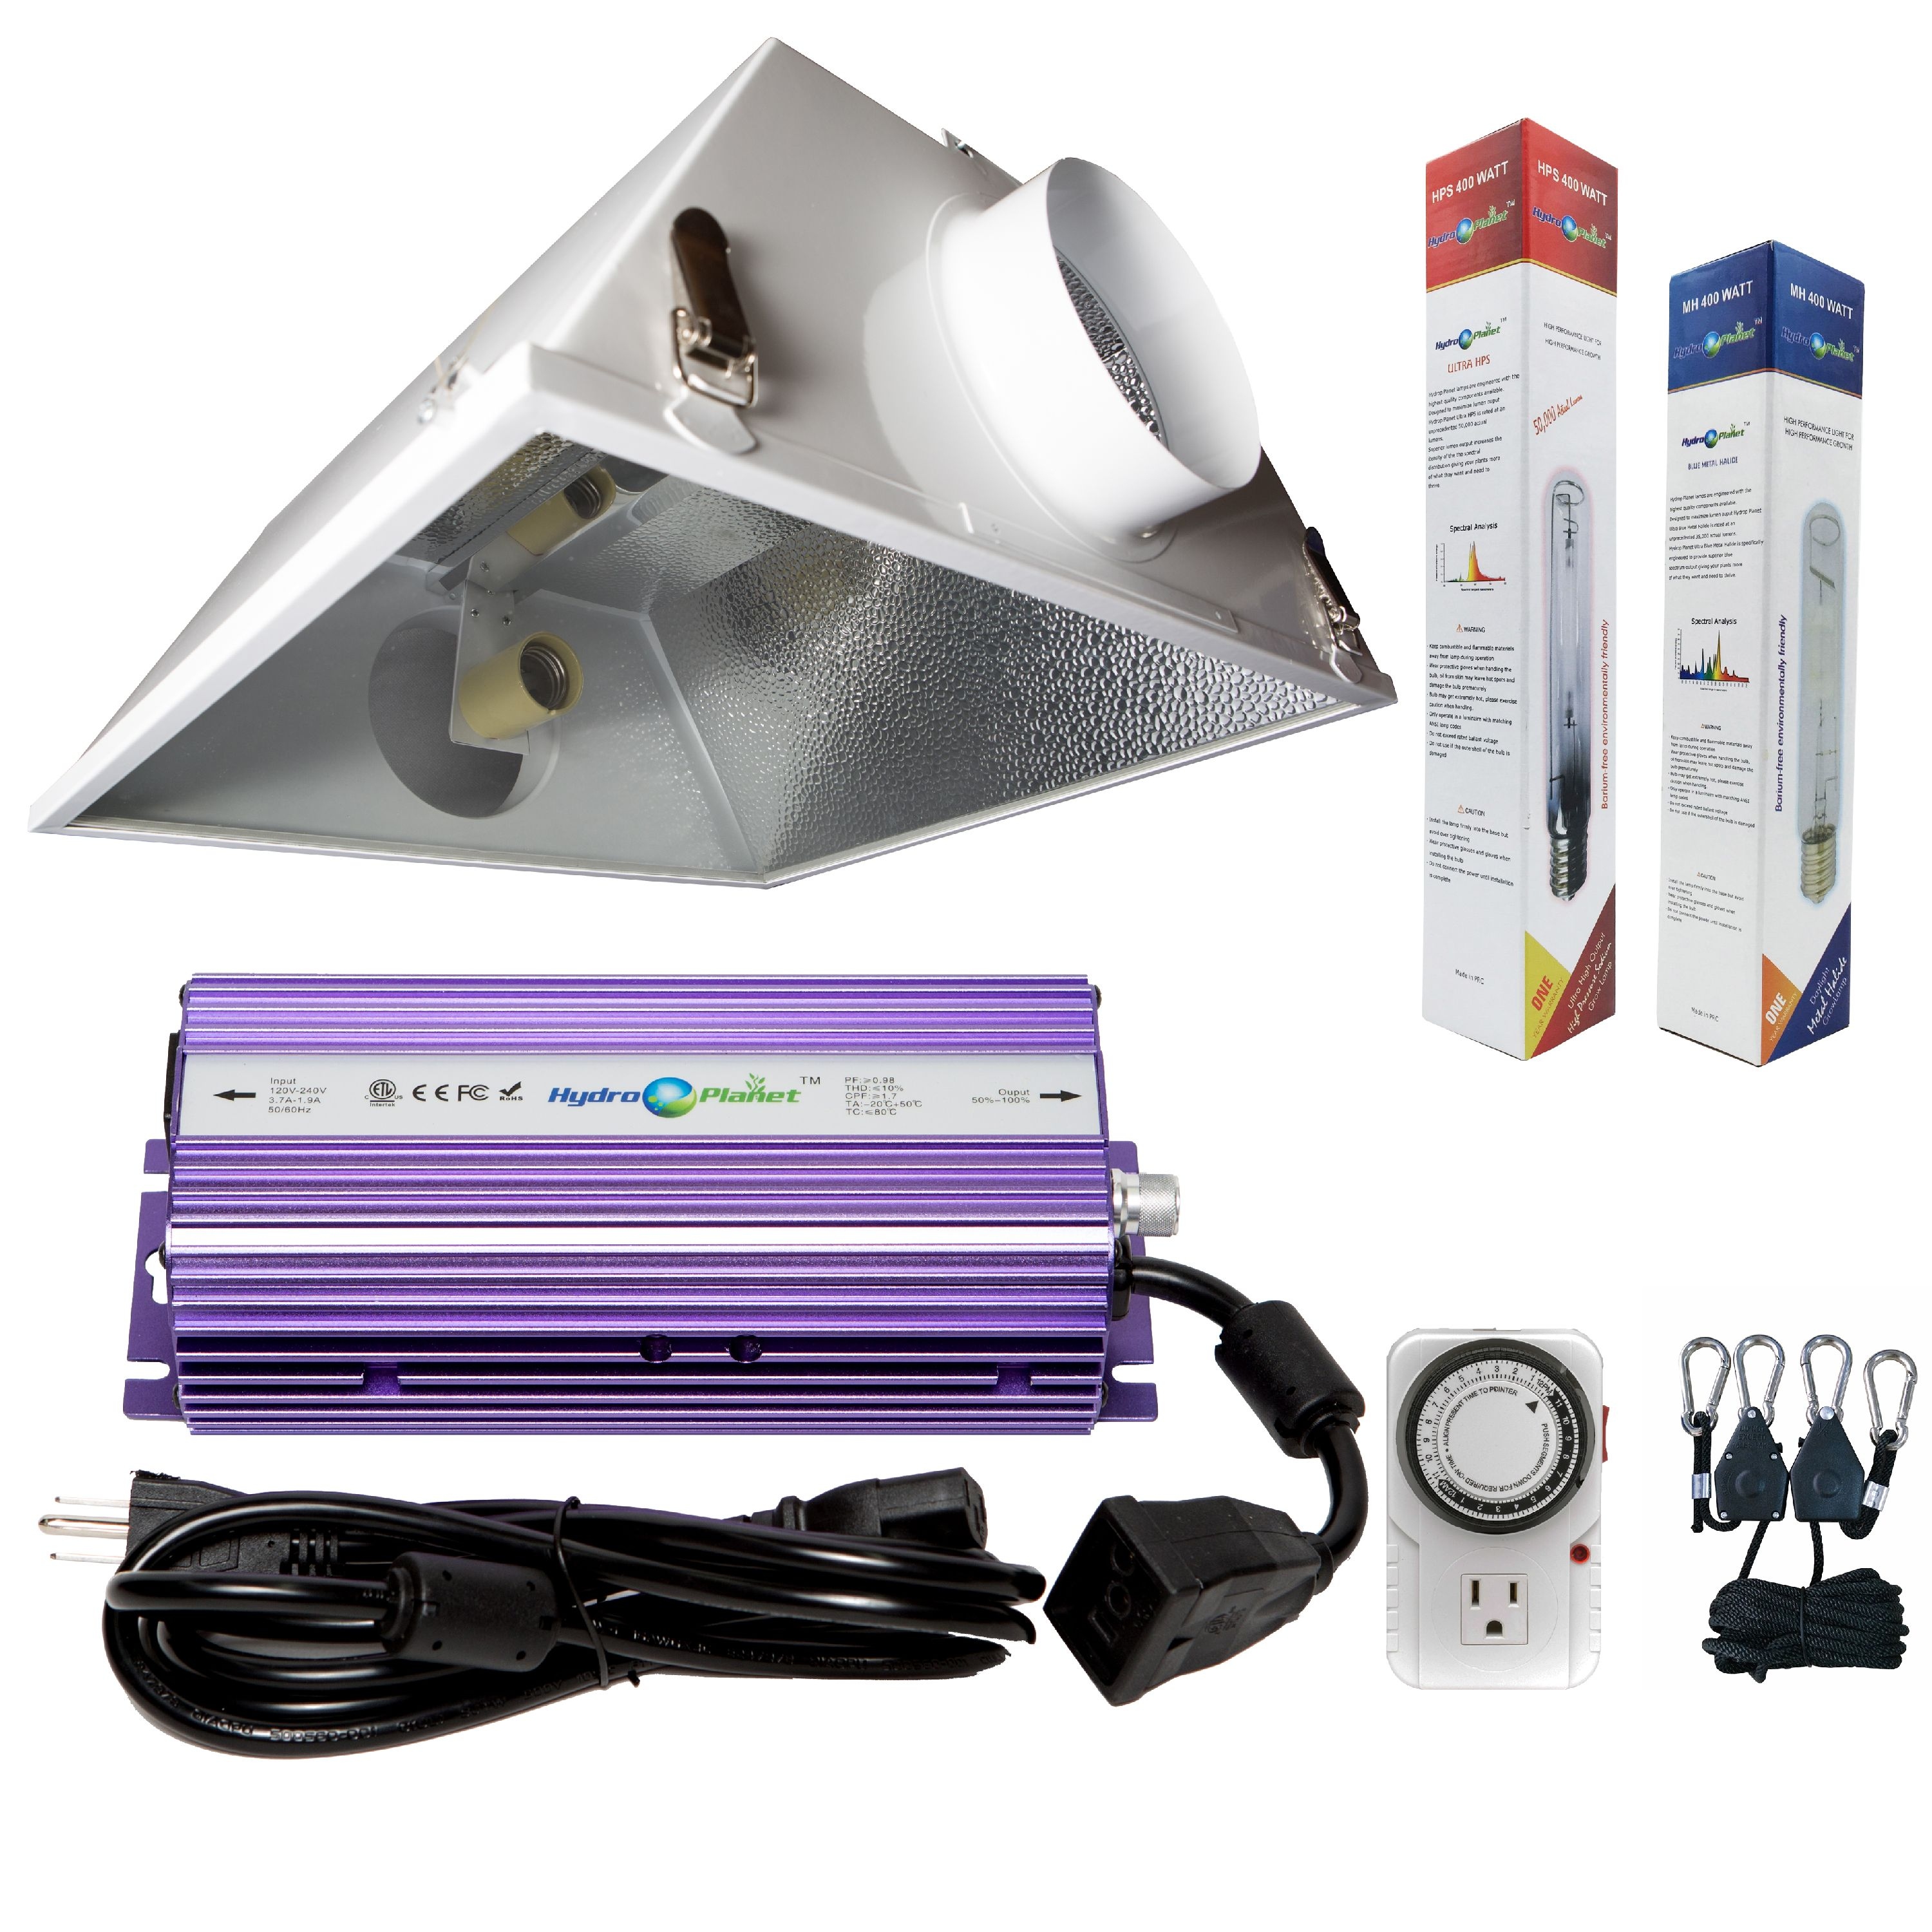 Hydroplanet™ 400w Digital Ballast Dimable HPS Mh Grow Light System for Plant with  6inch Air Cooled Reflector